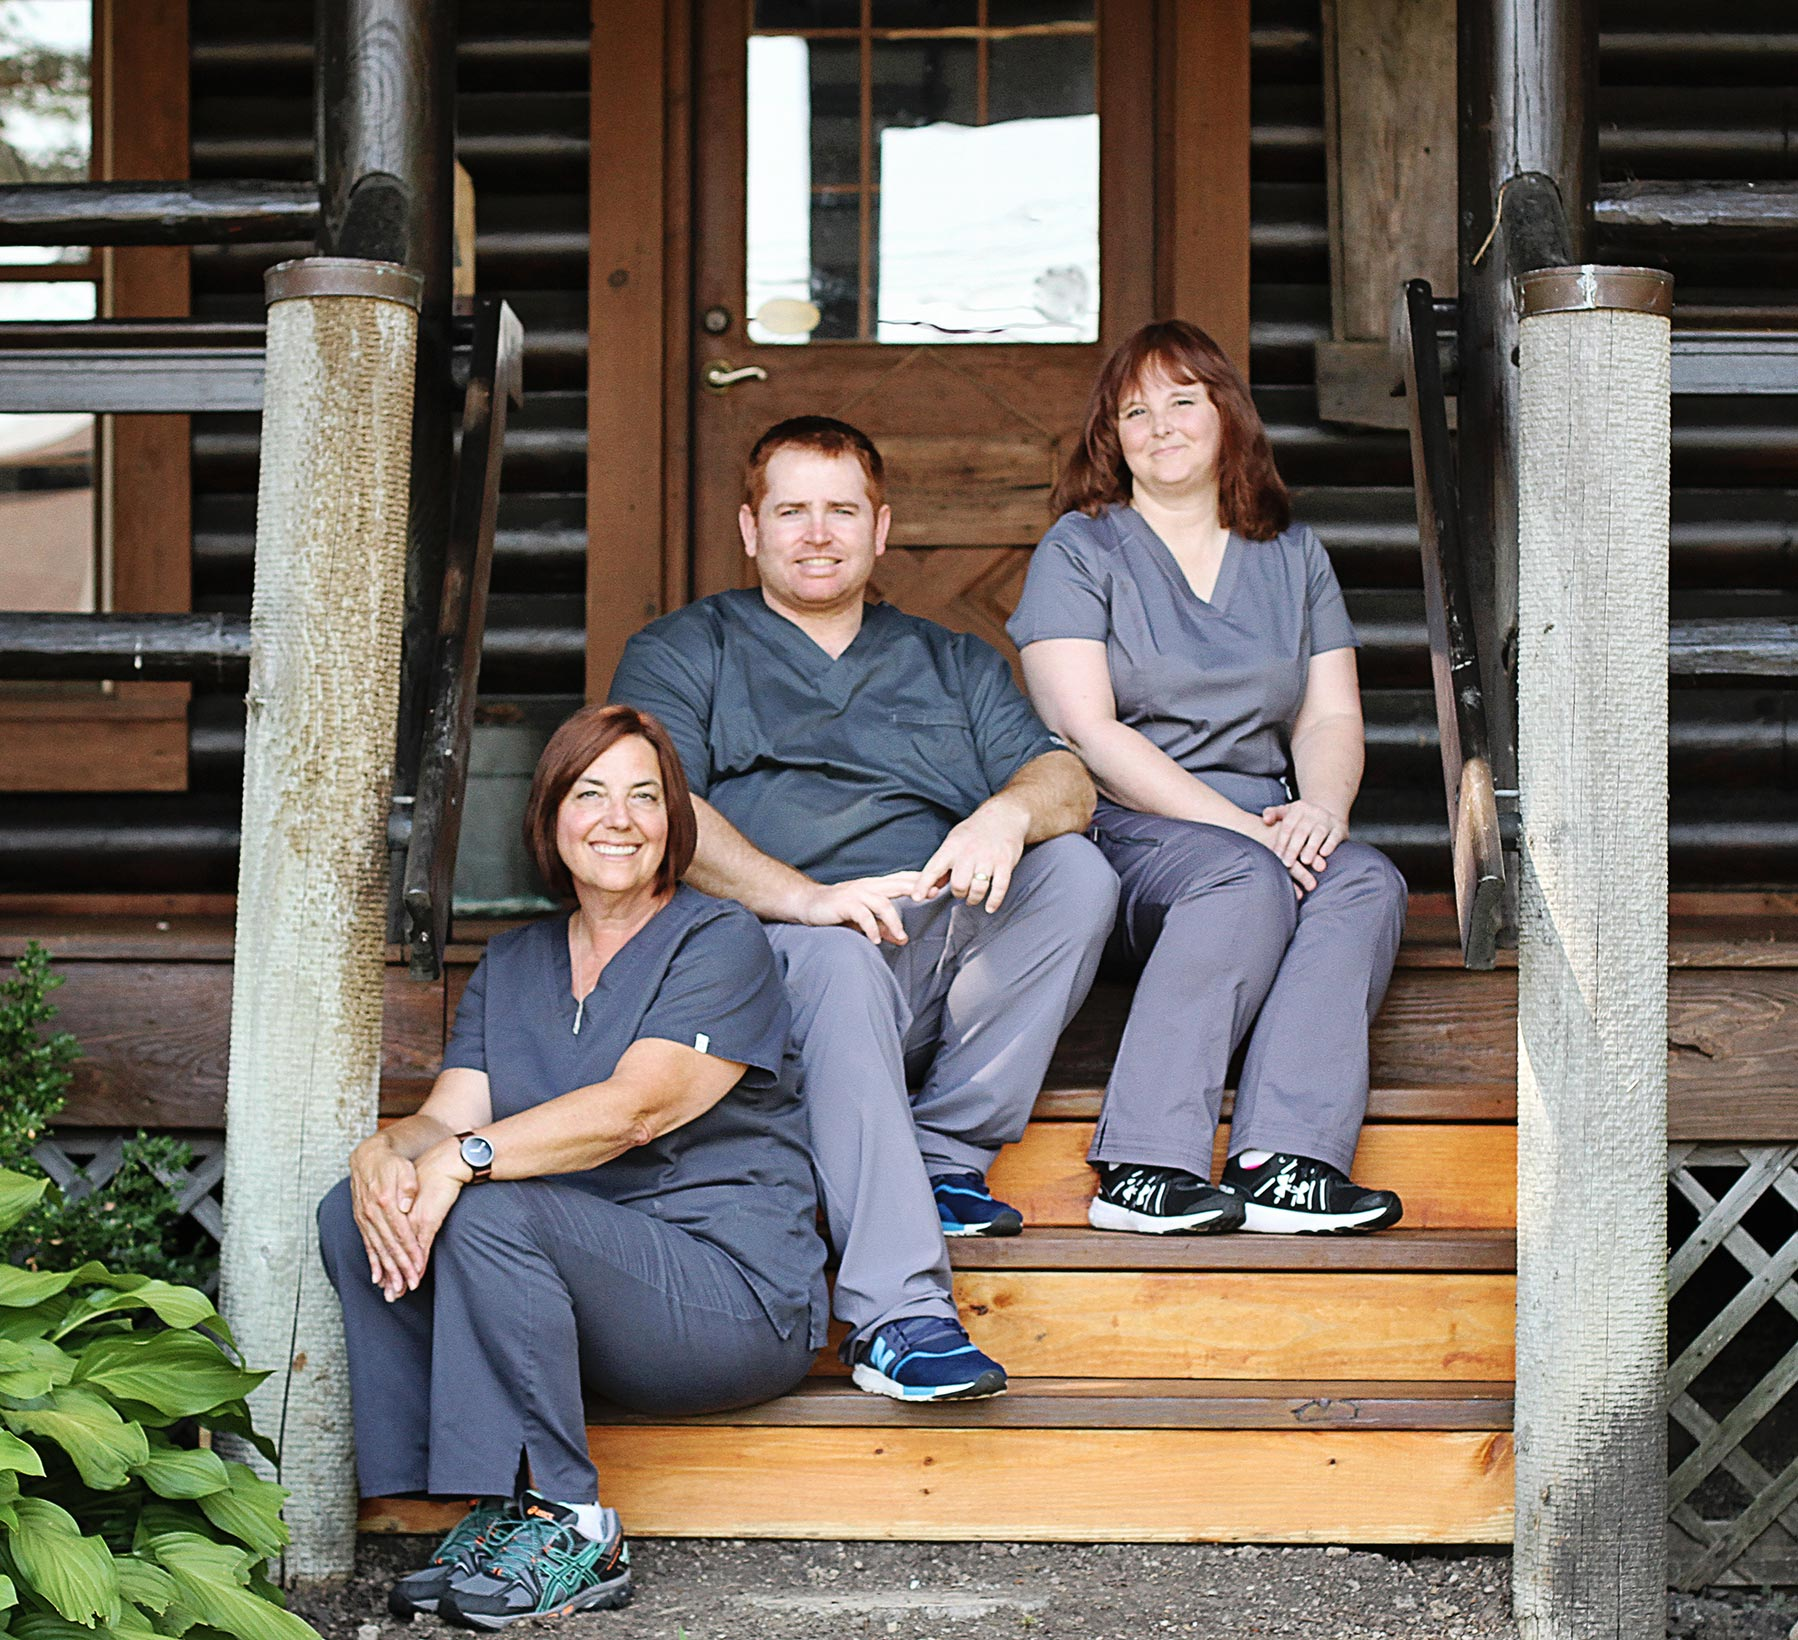 Dr. Kanetsky smiling in front of cabin with his staff